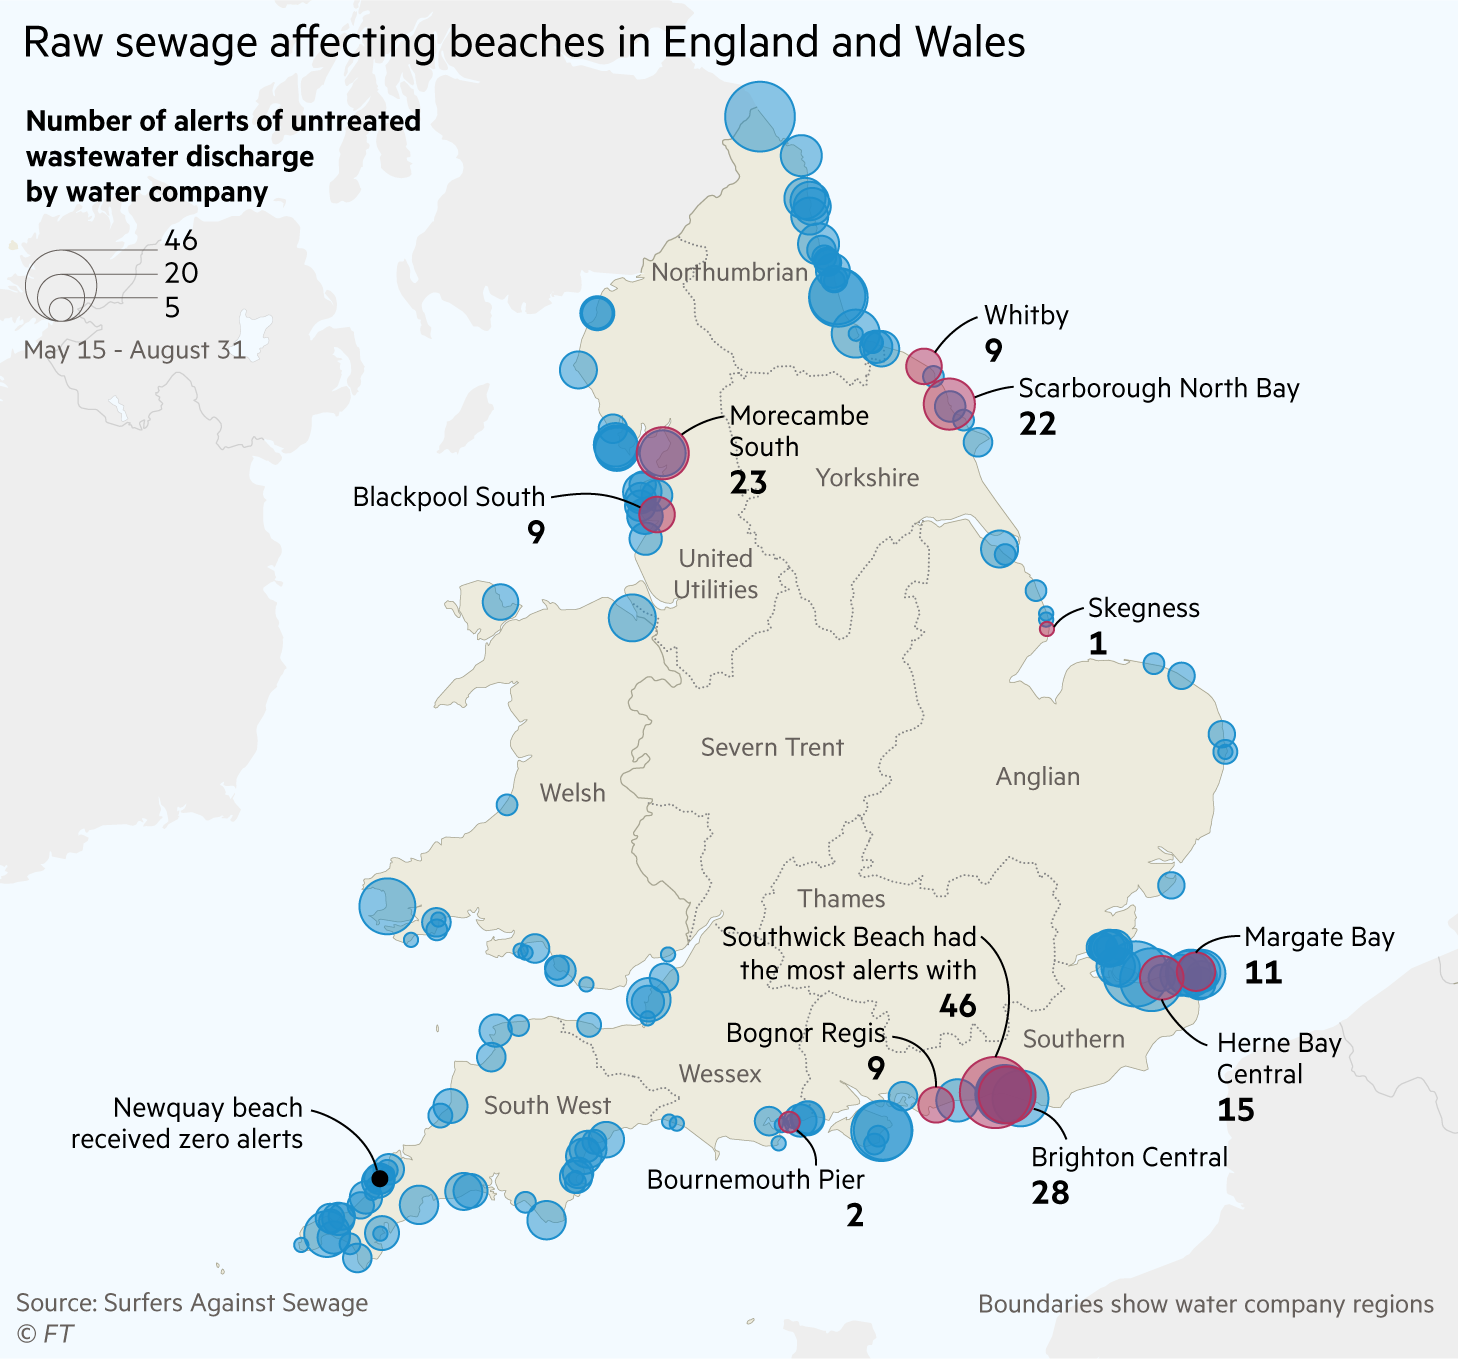 Map showing Number of alerts of untreated wastewater discharge by water company in England and Wales